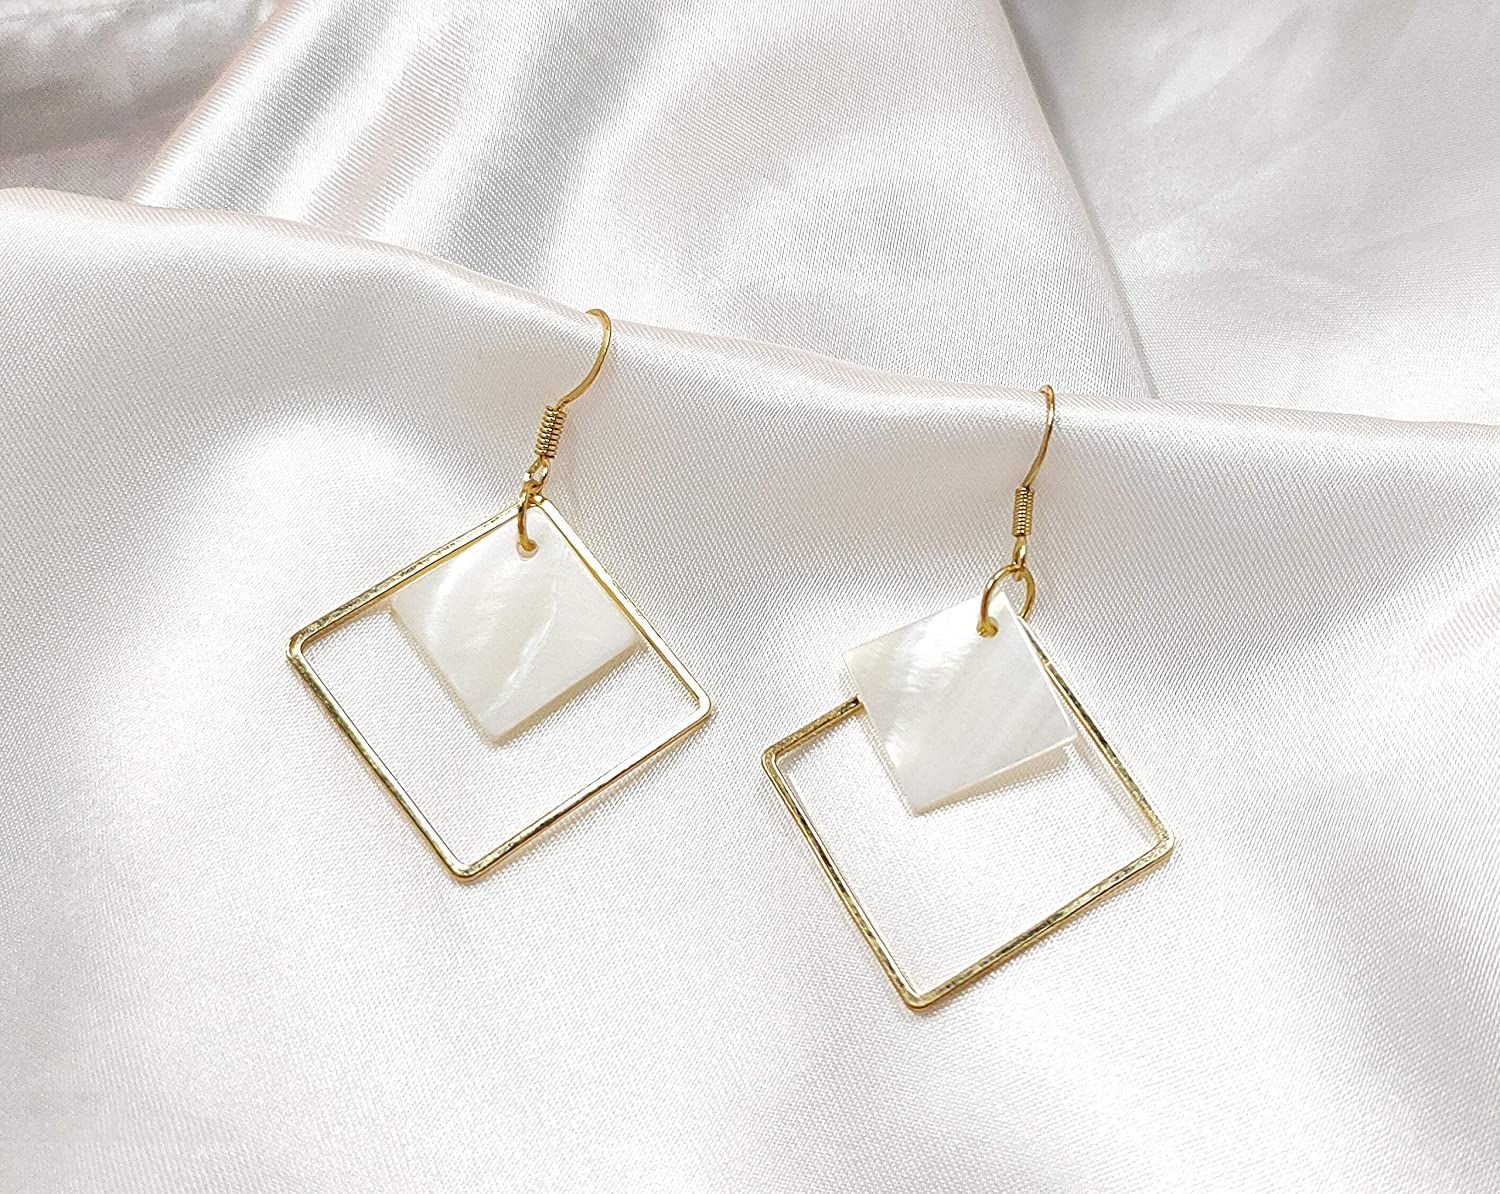 14k Gold Plated Square White Shell Drop Earrings La Raffine For Women Jewelry Wedding Geometric Earrings for Women Girl Gifts Present Valentines Birthday Anniversary Mothers Day Christmas(Golden)